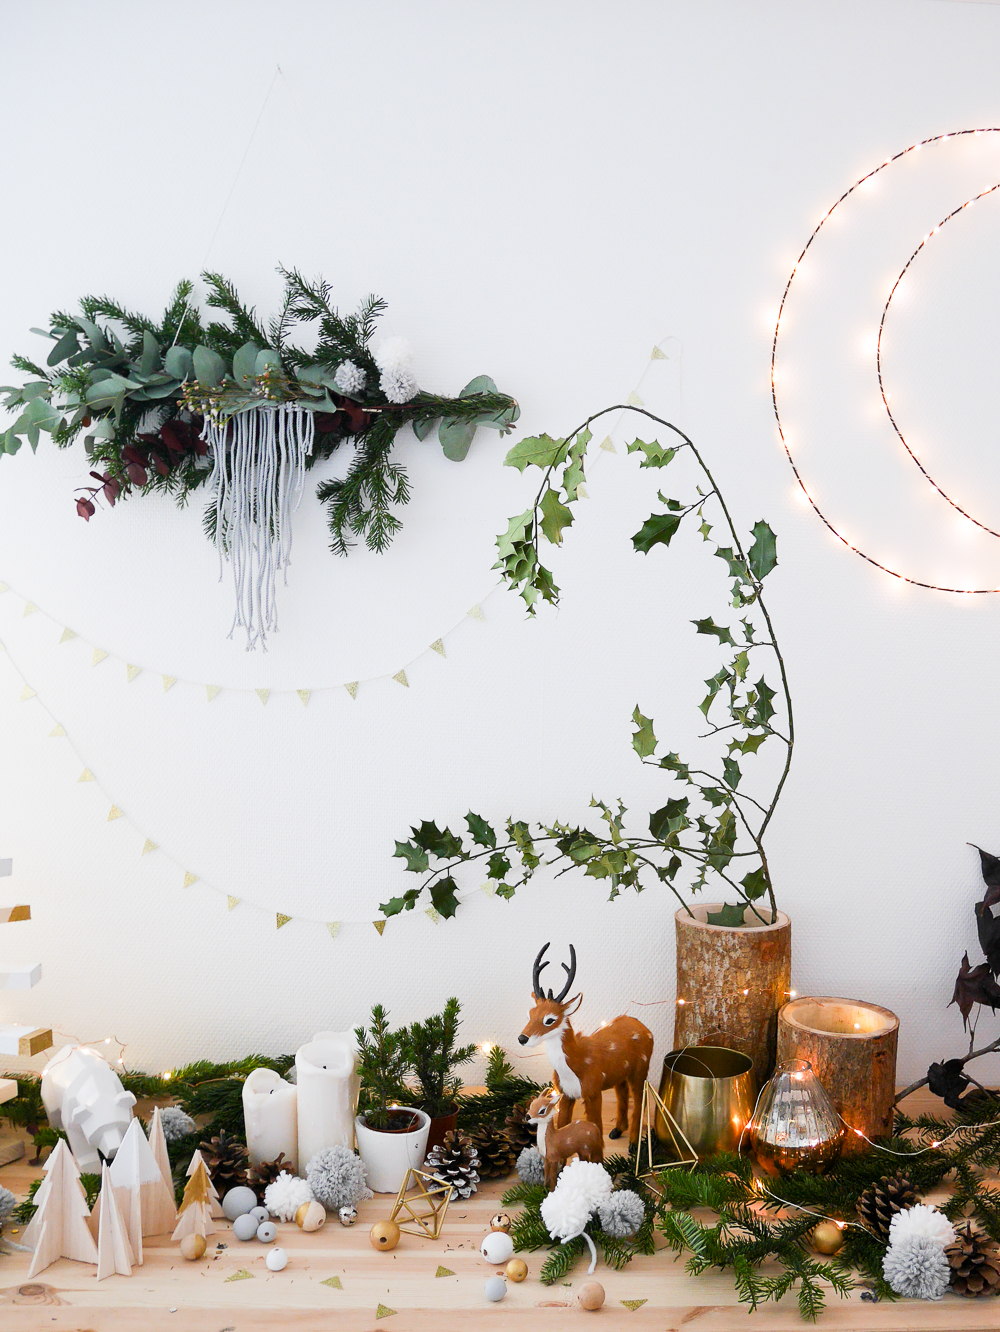 diy-de-noel-deco-lili-in-wonderland-160